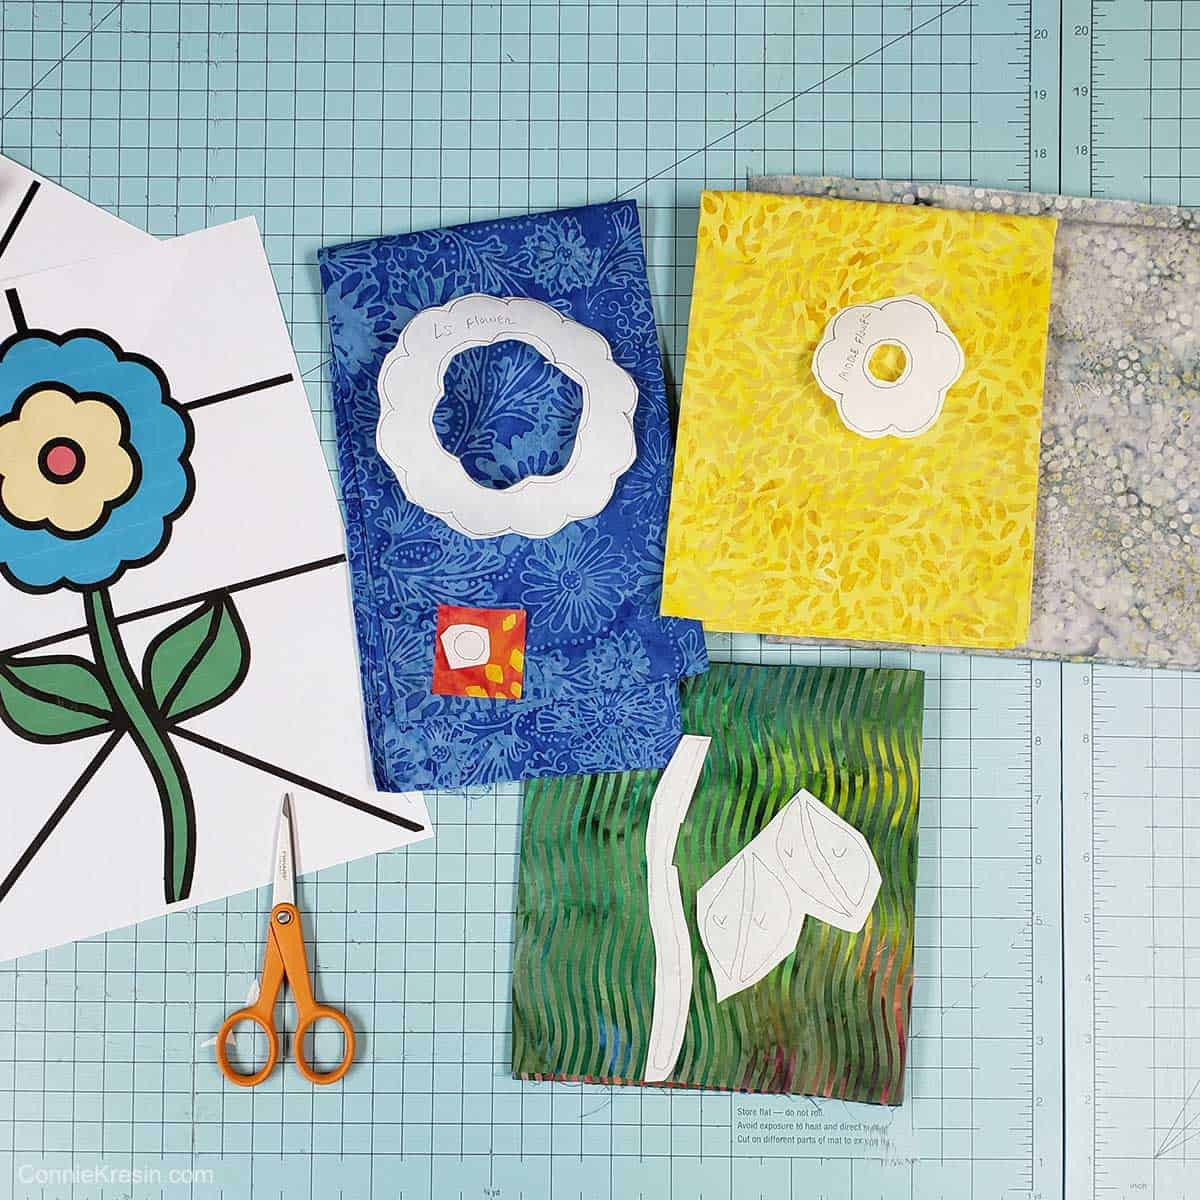 Quilted stained glass batik fabric shapes